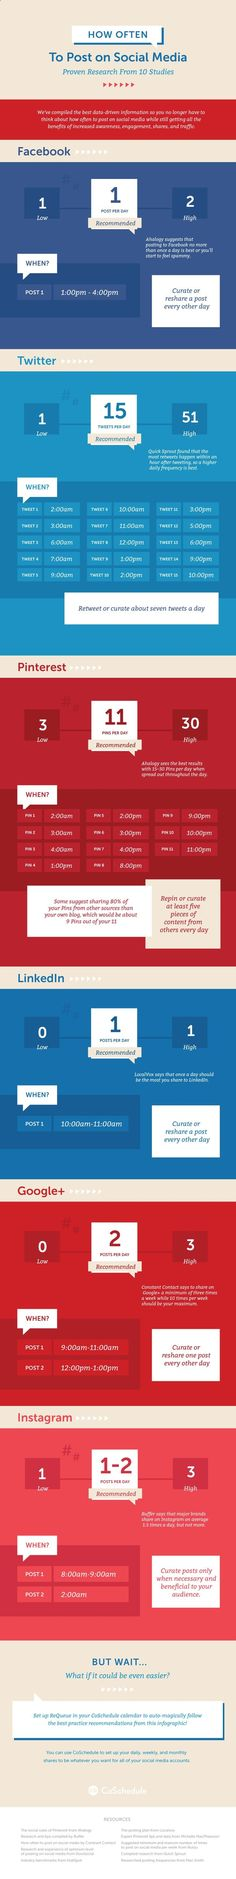 We did the research for you! Here's how often you should post on social media coschedule.com/...